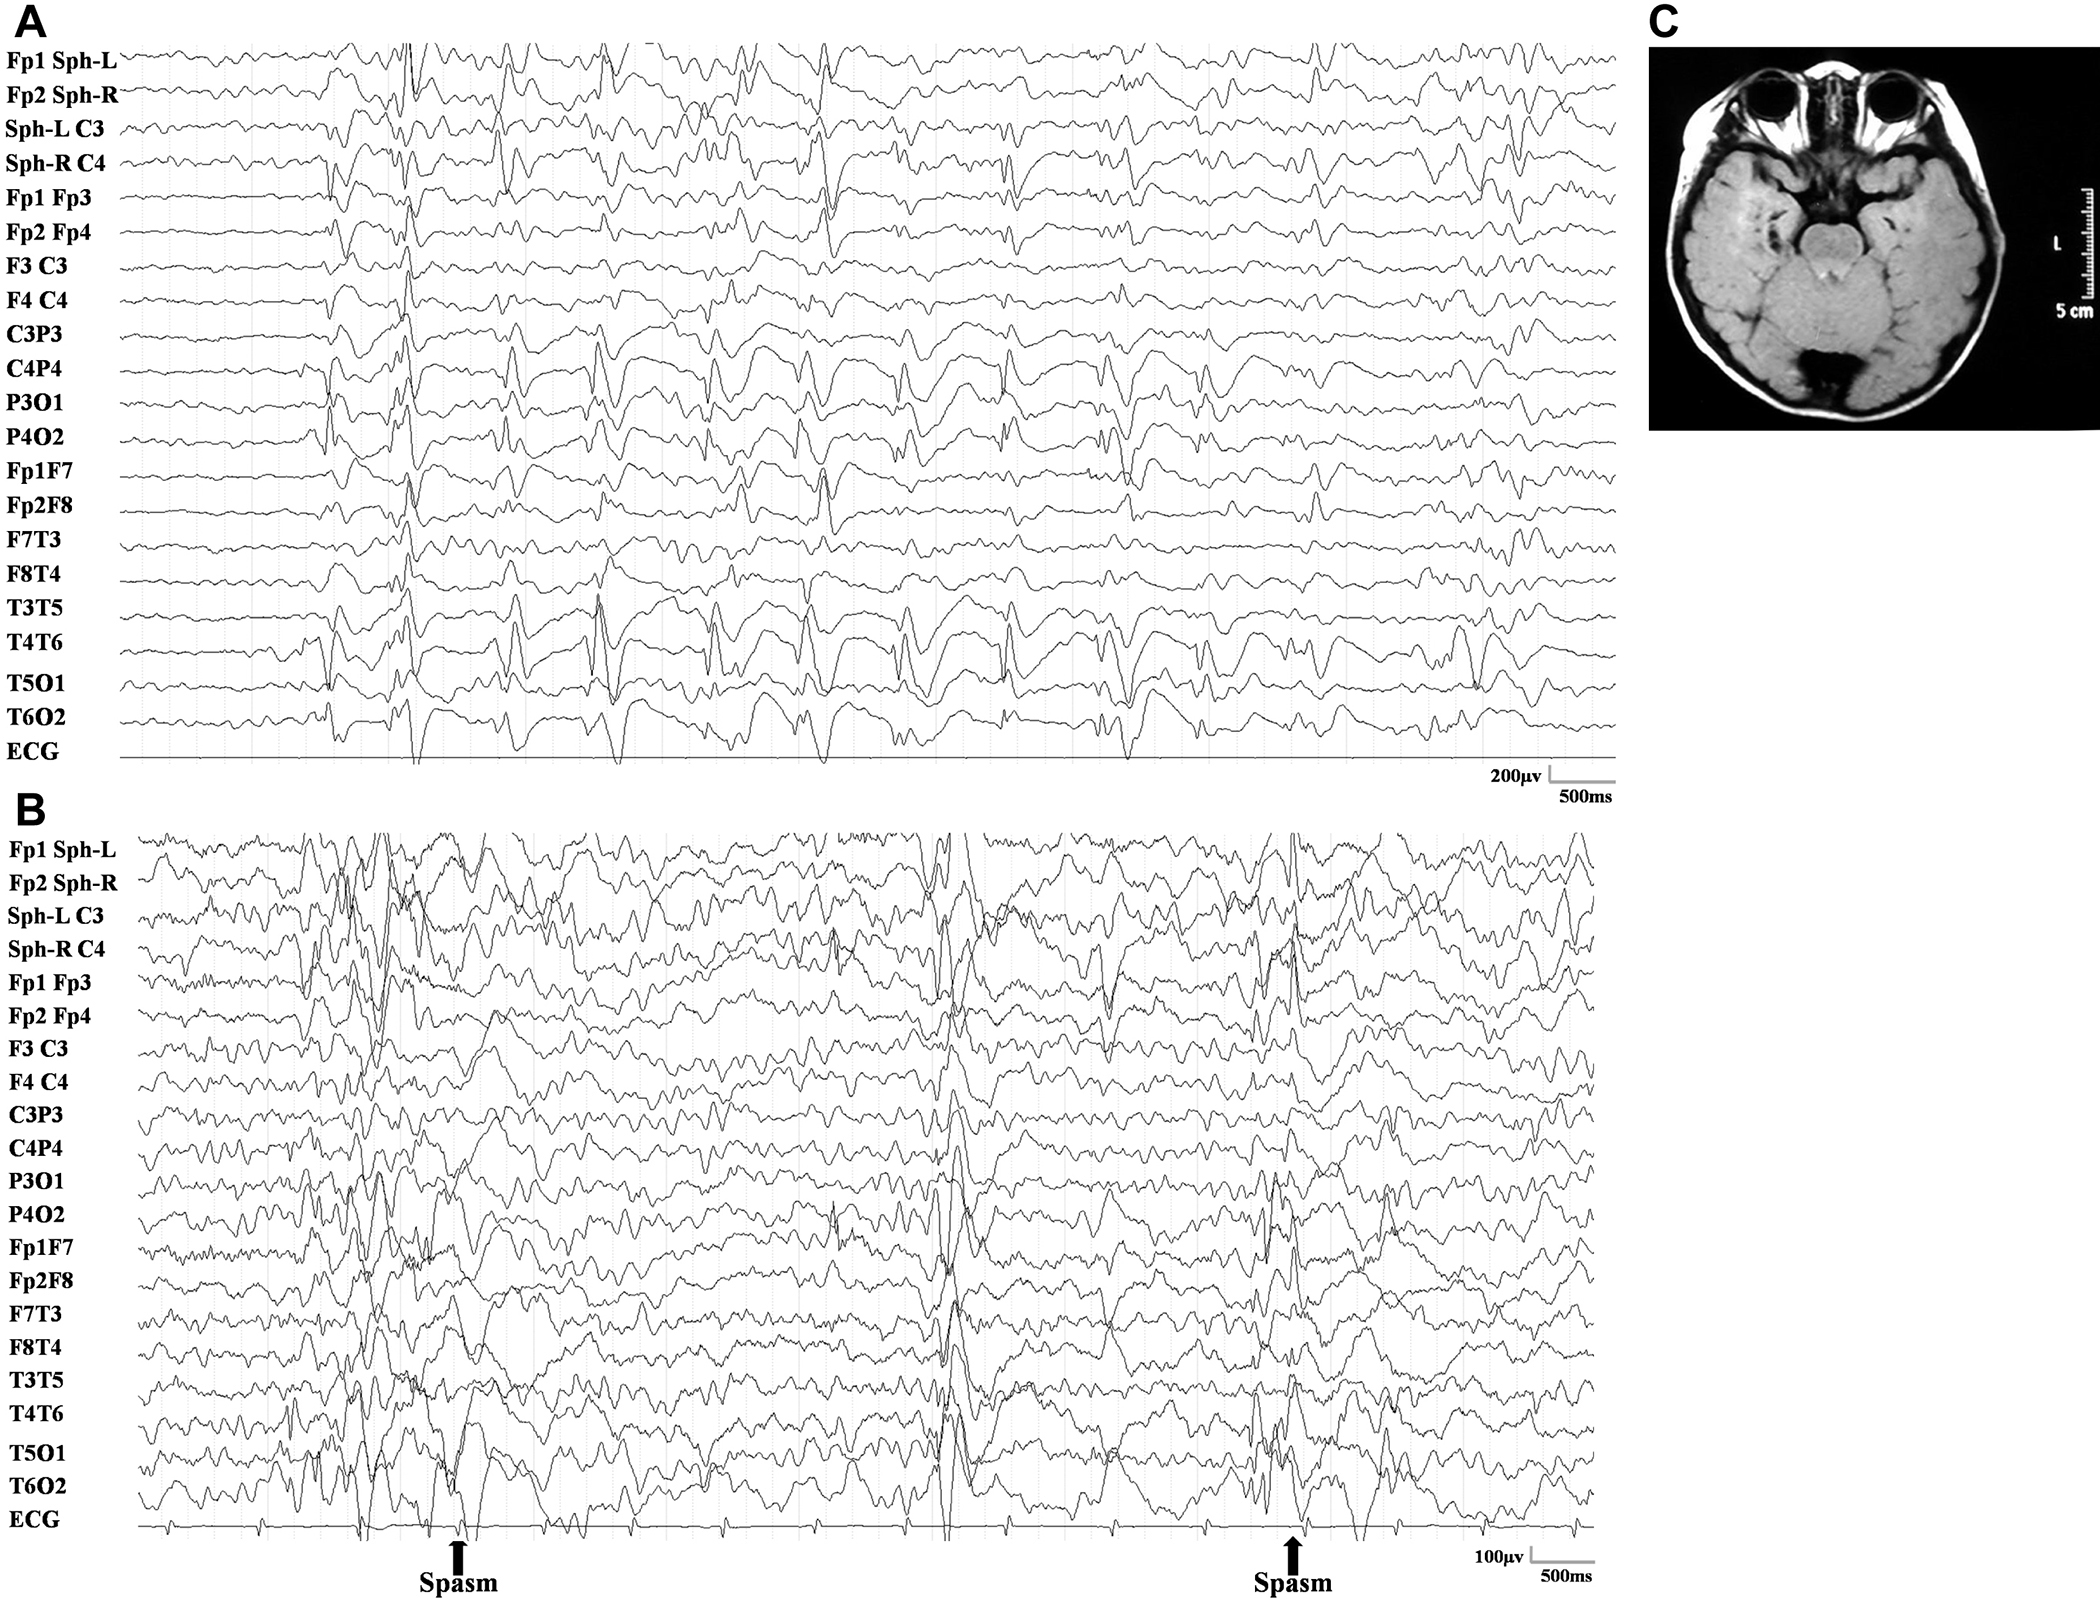 Concordance between the interictal focal EEG pattern and MRI